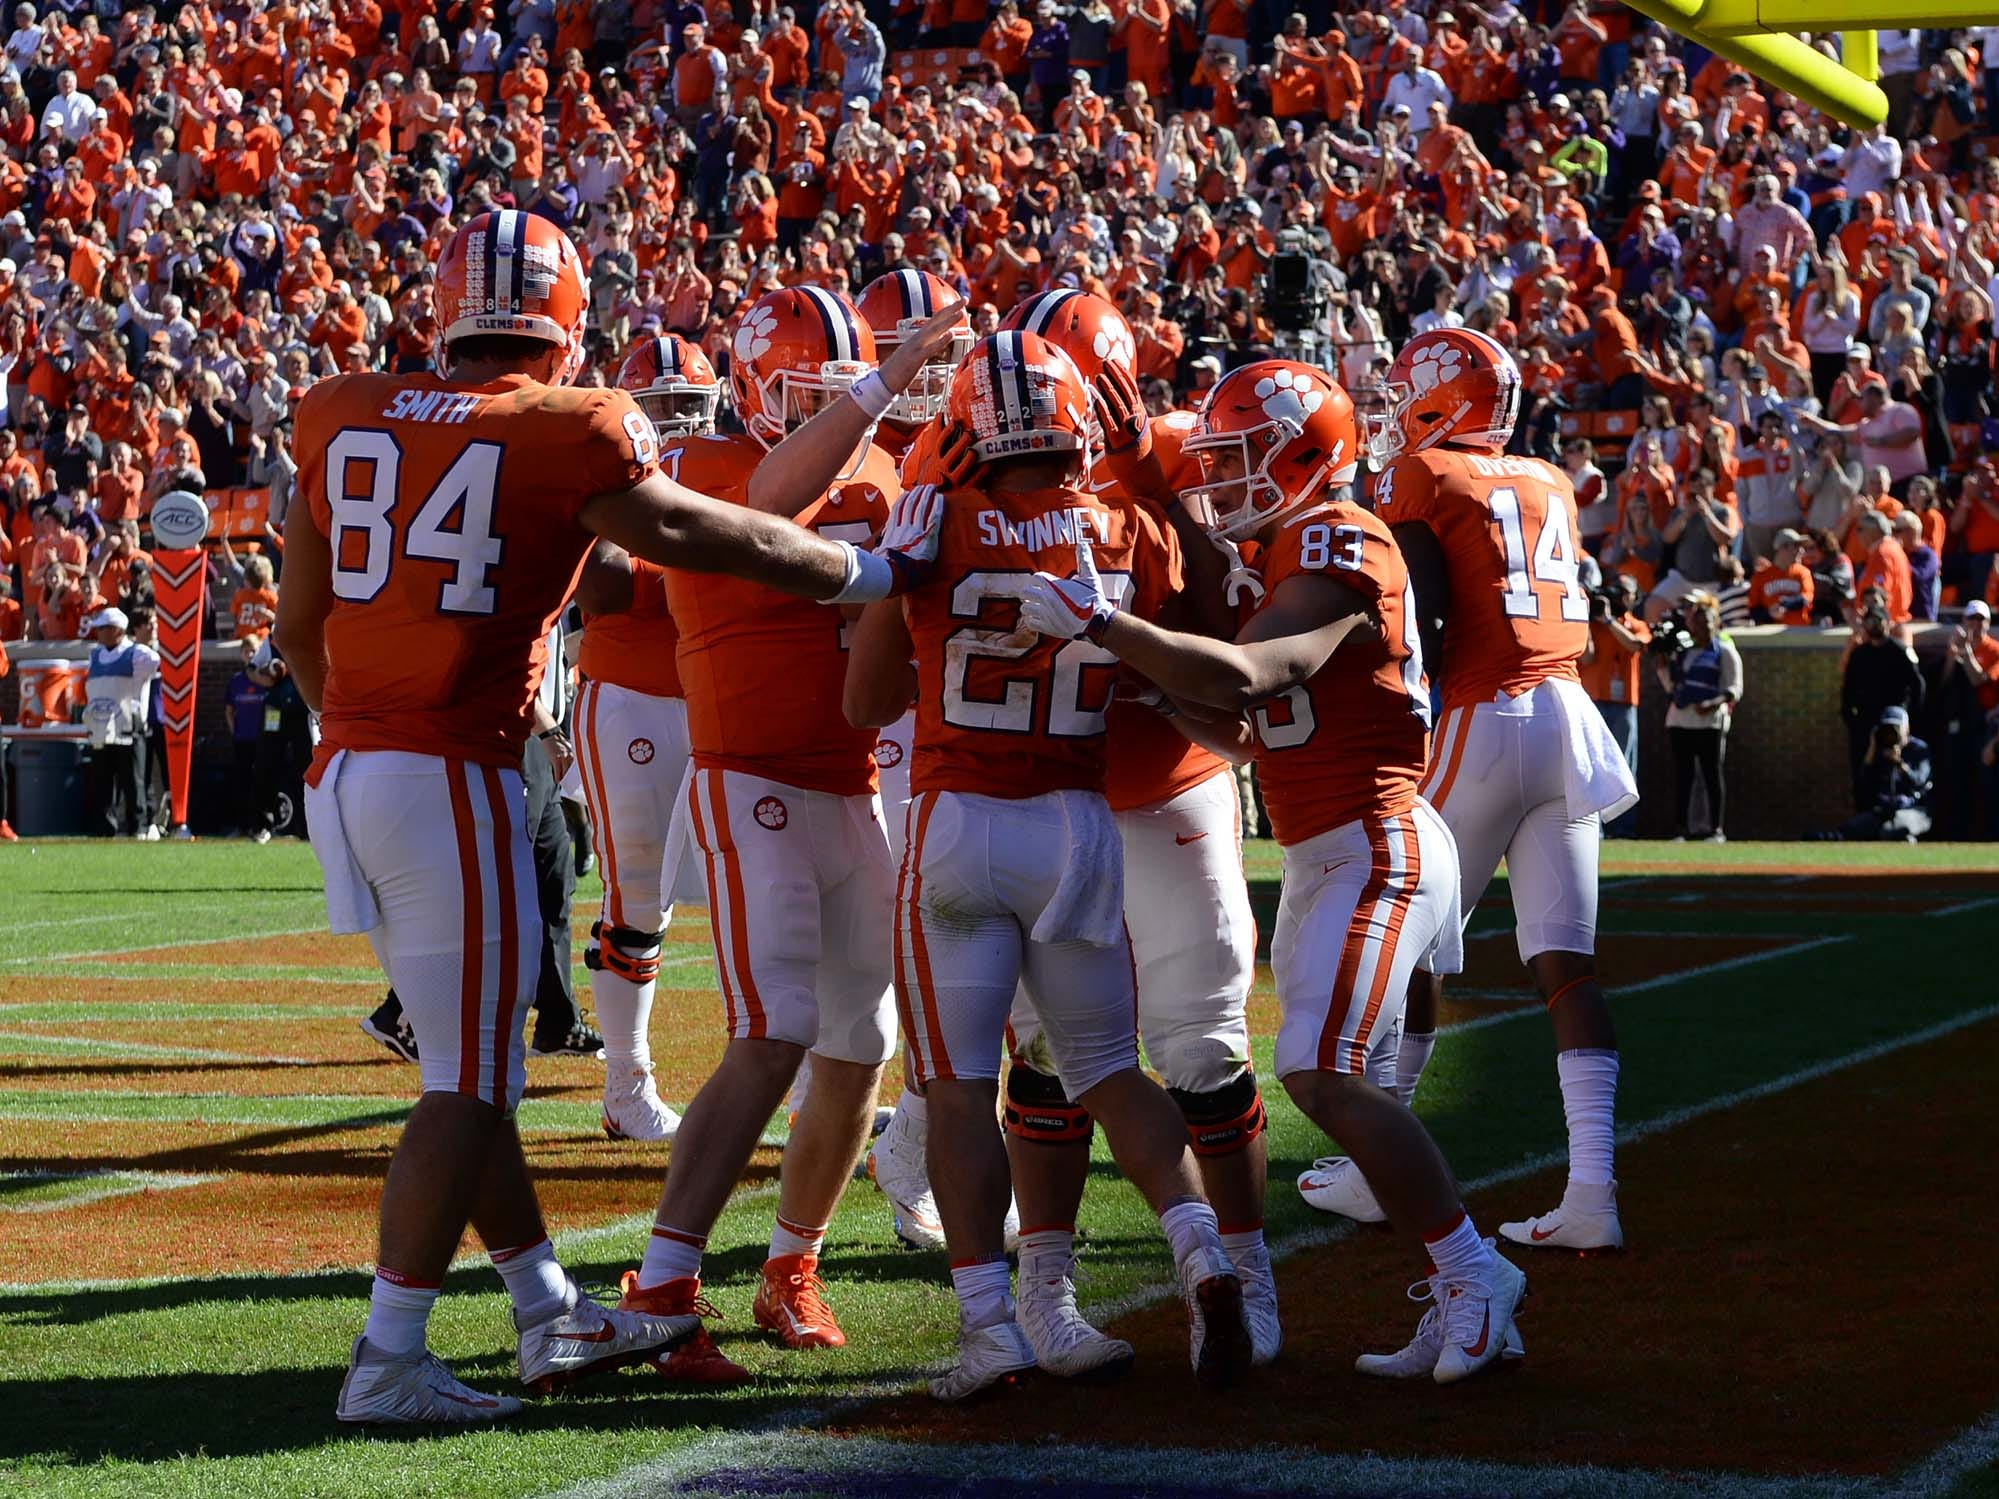 Clemson wide receiver Will Swinney (22) is congratulated by teammates after scoring his first college level touchdown against Louisville during the fourth quarter in Memorial Stadium on Saturday, November 3, 2018.